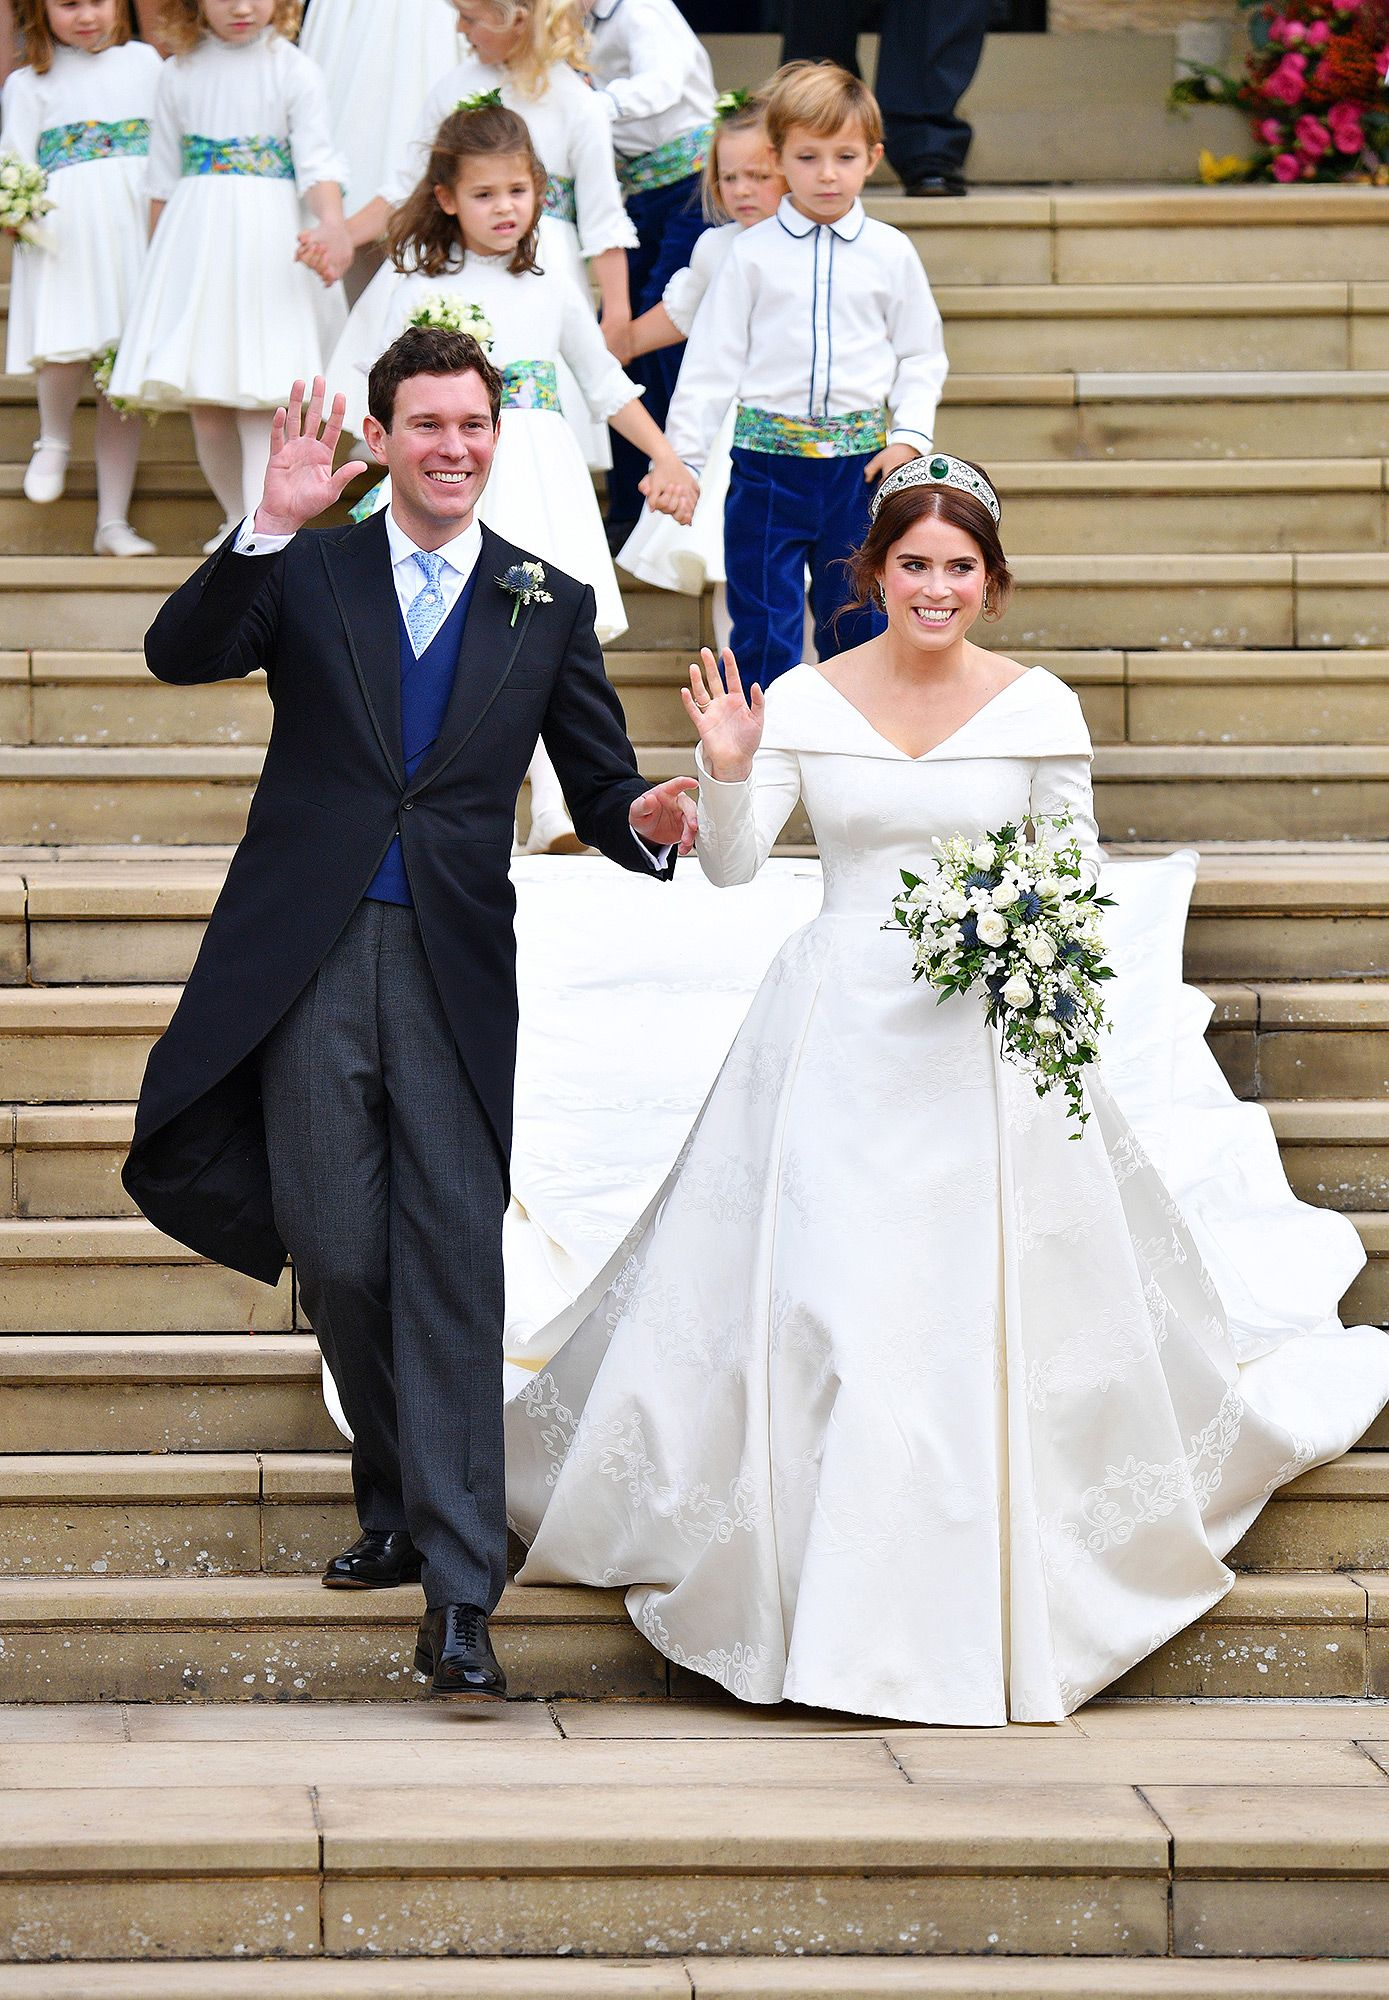 Princess Eugenie and Meghan Markle's Wedding Tiaras Have